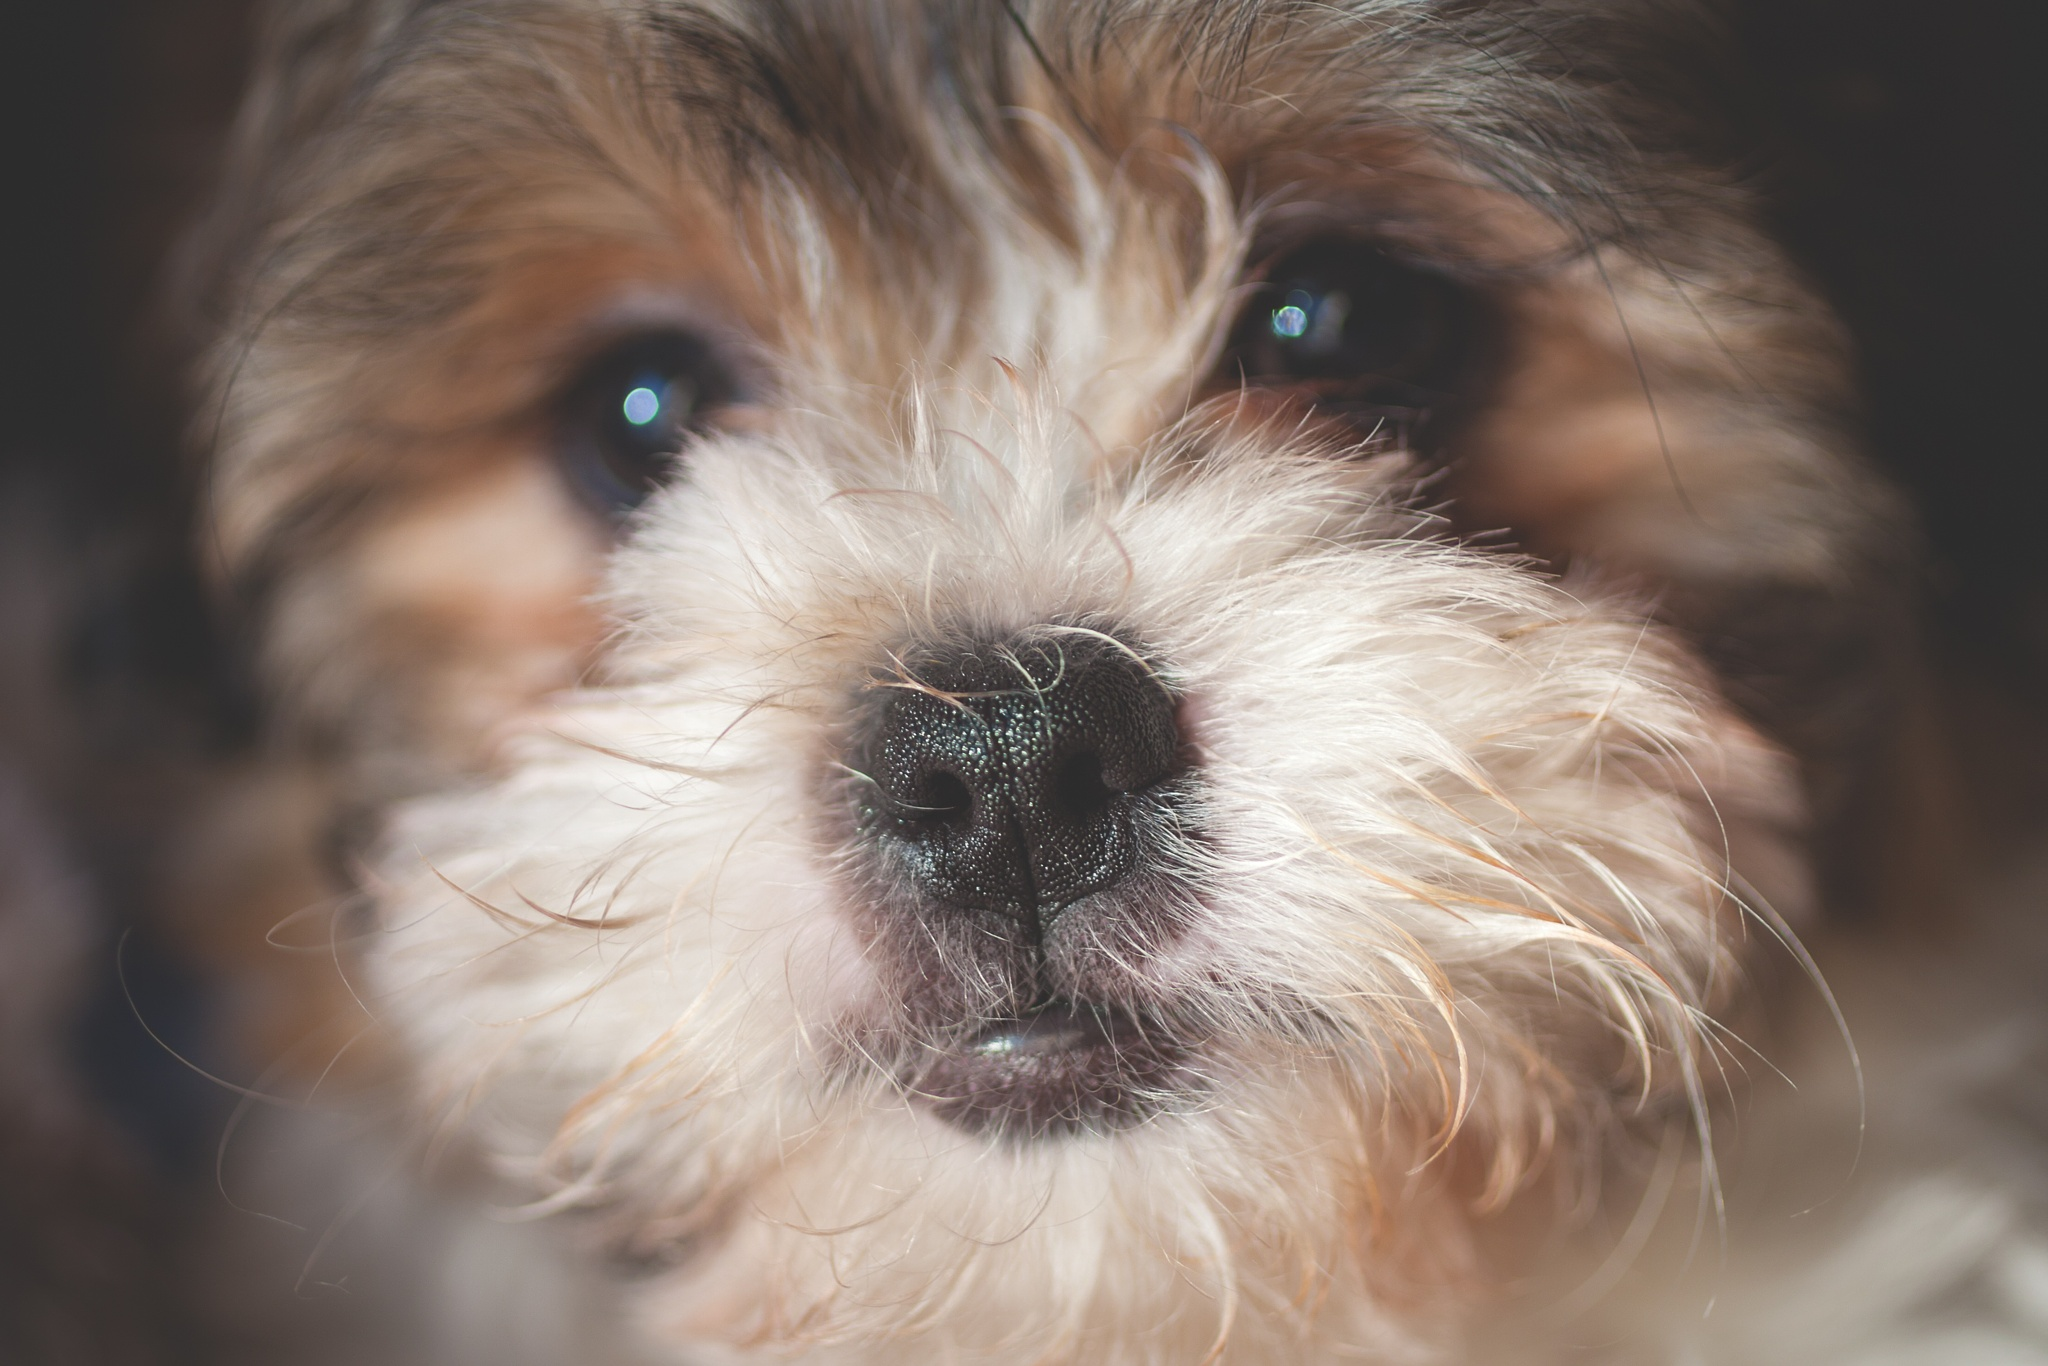 My new Furbaby by dianeholmanphotography